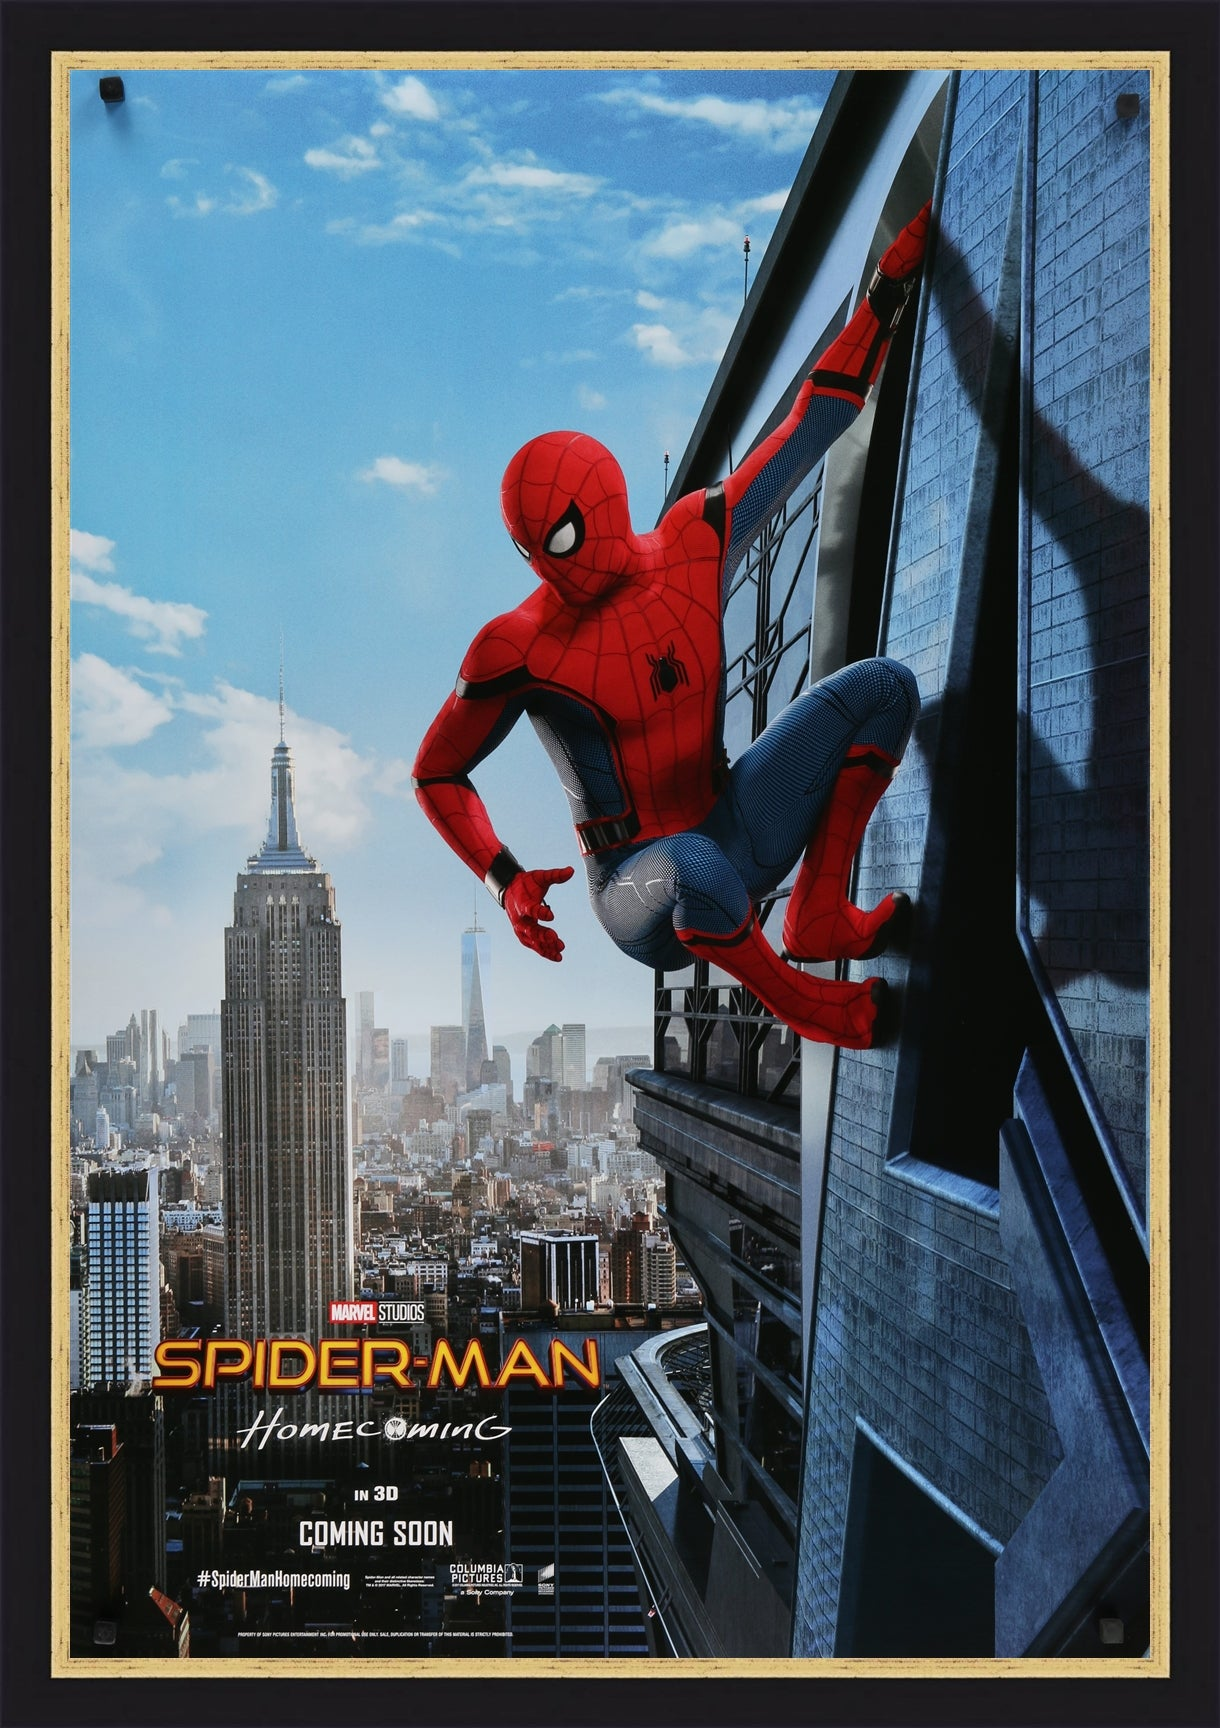 An original movie poster for the Marvel film Spiderman Homecoming